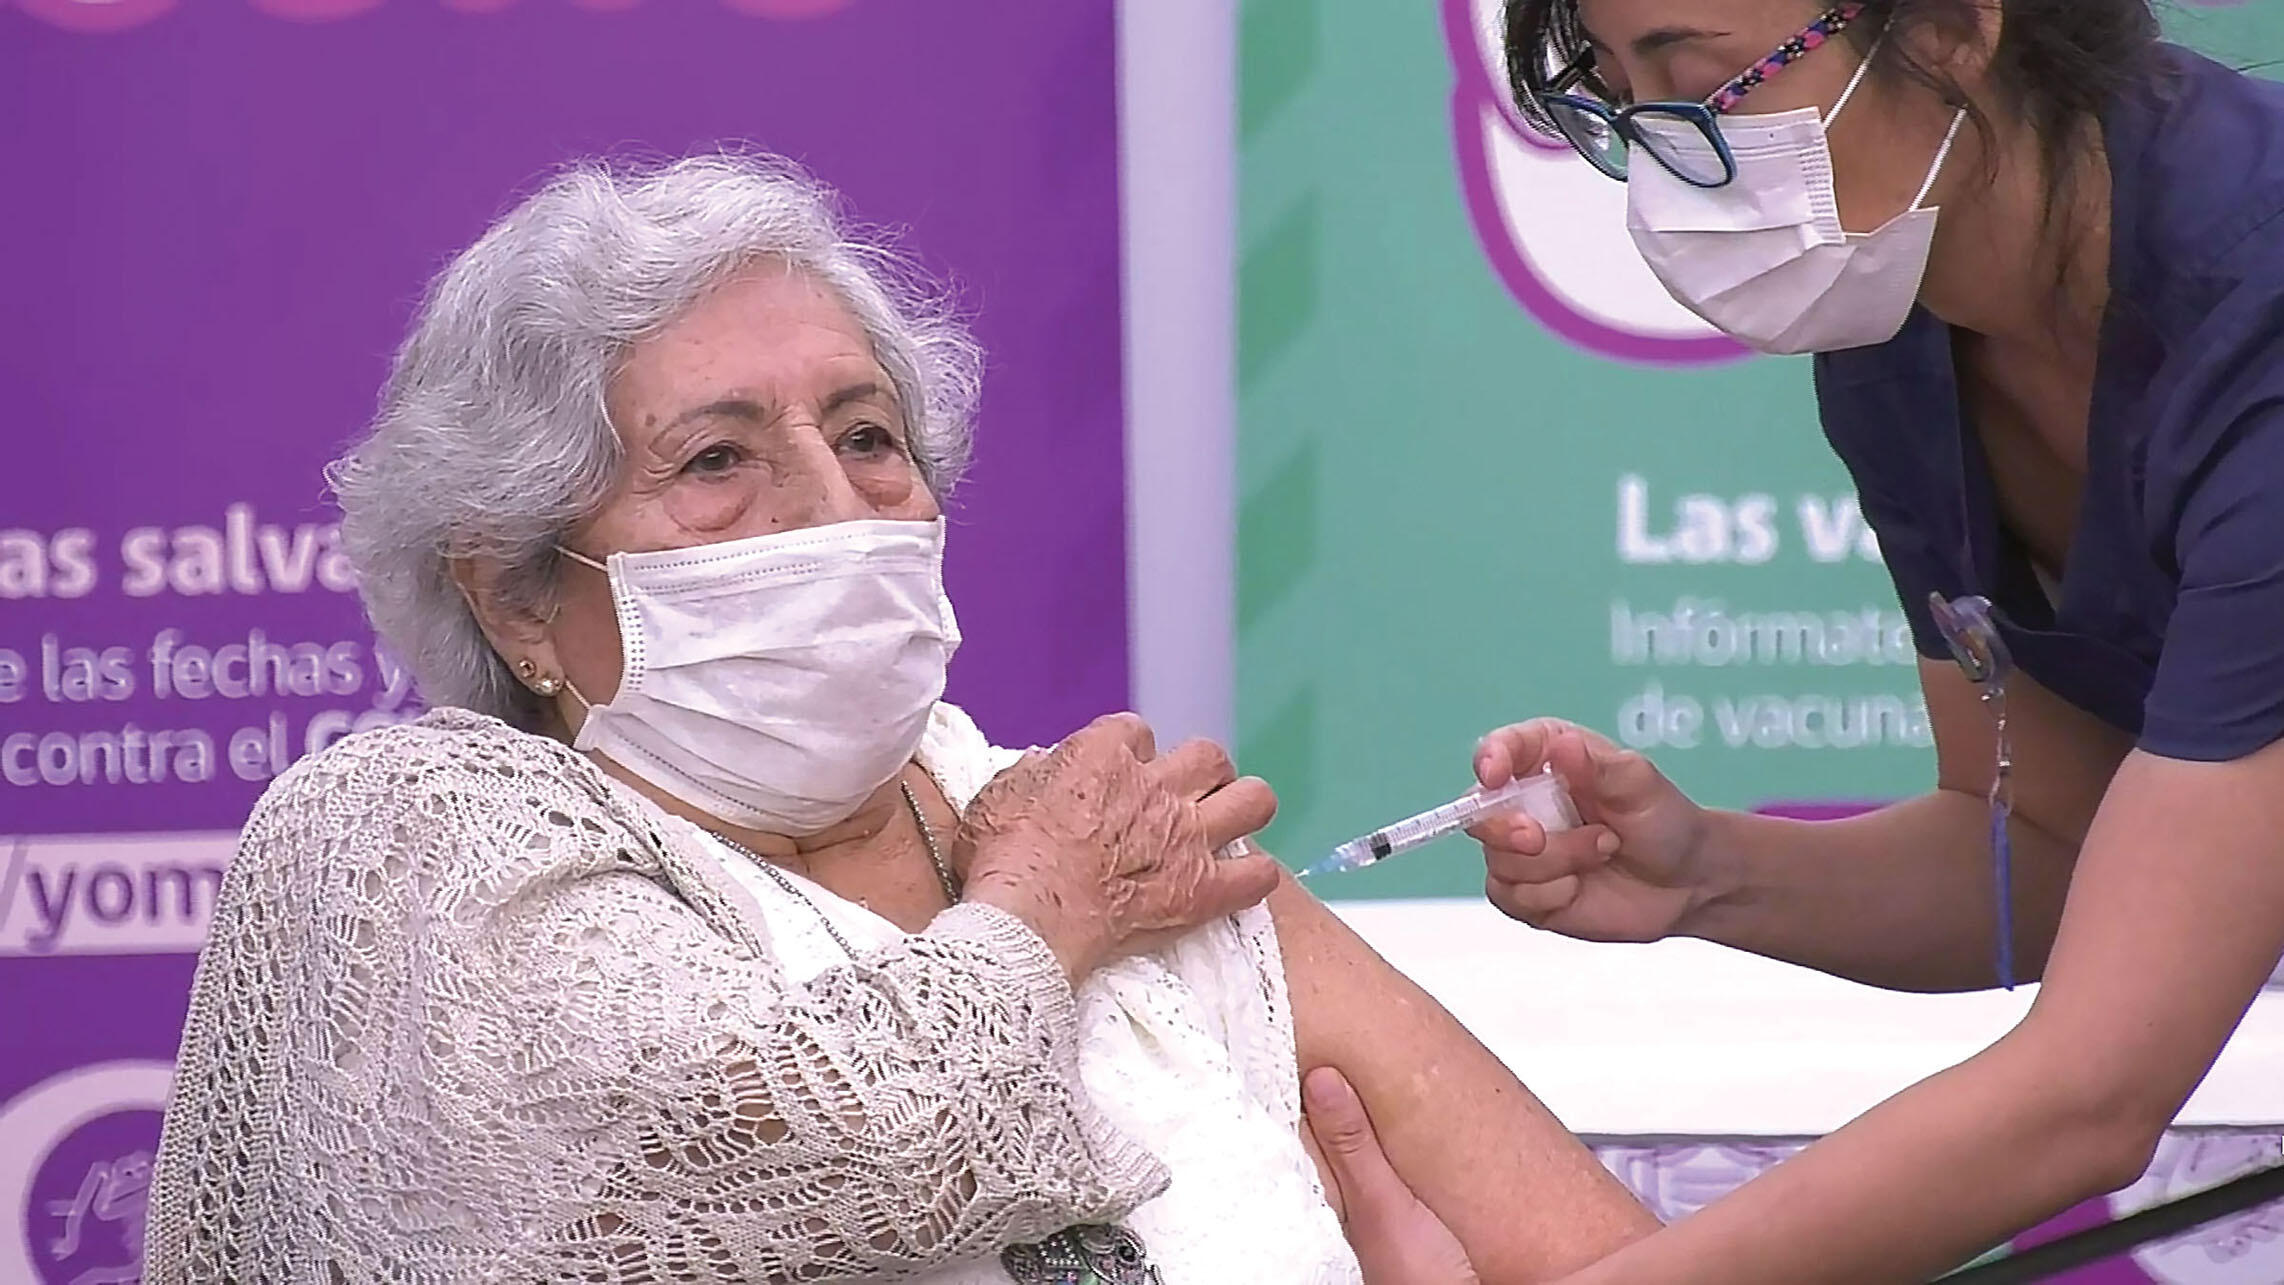 A older woman in a sweater is vaccinated in Santiago, February 2021. (Photo courtesy of Mediabanco Agencia.)